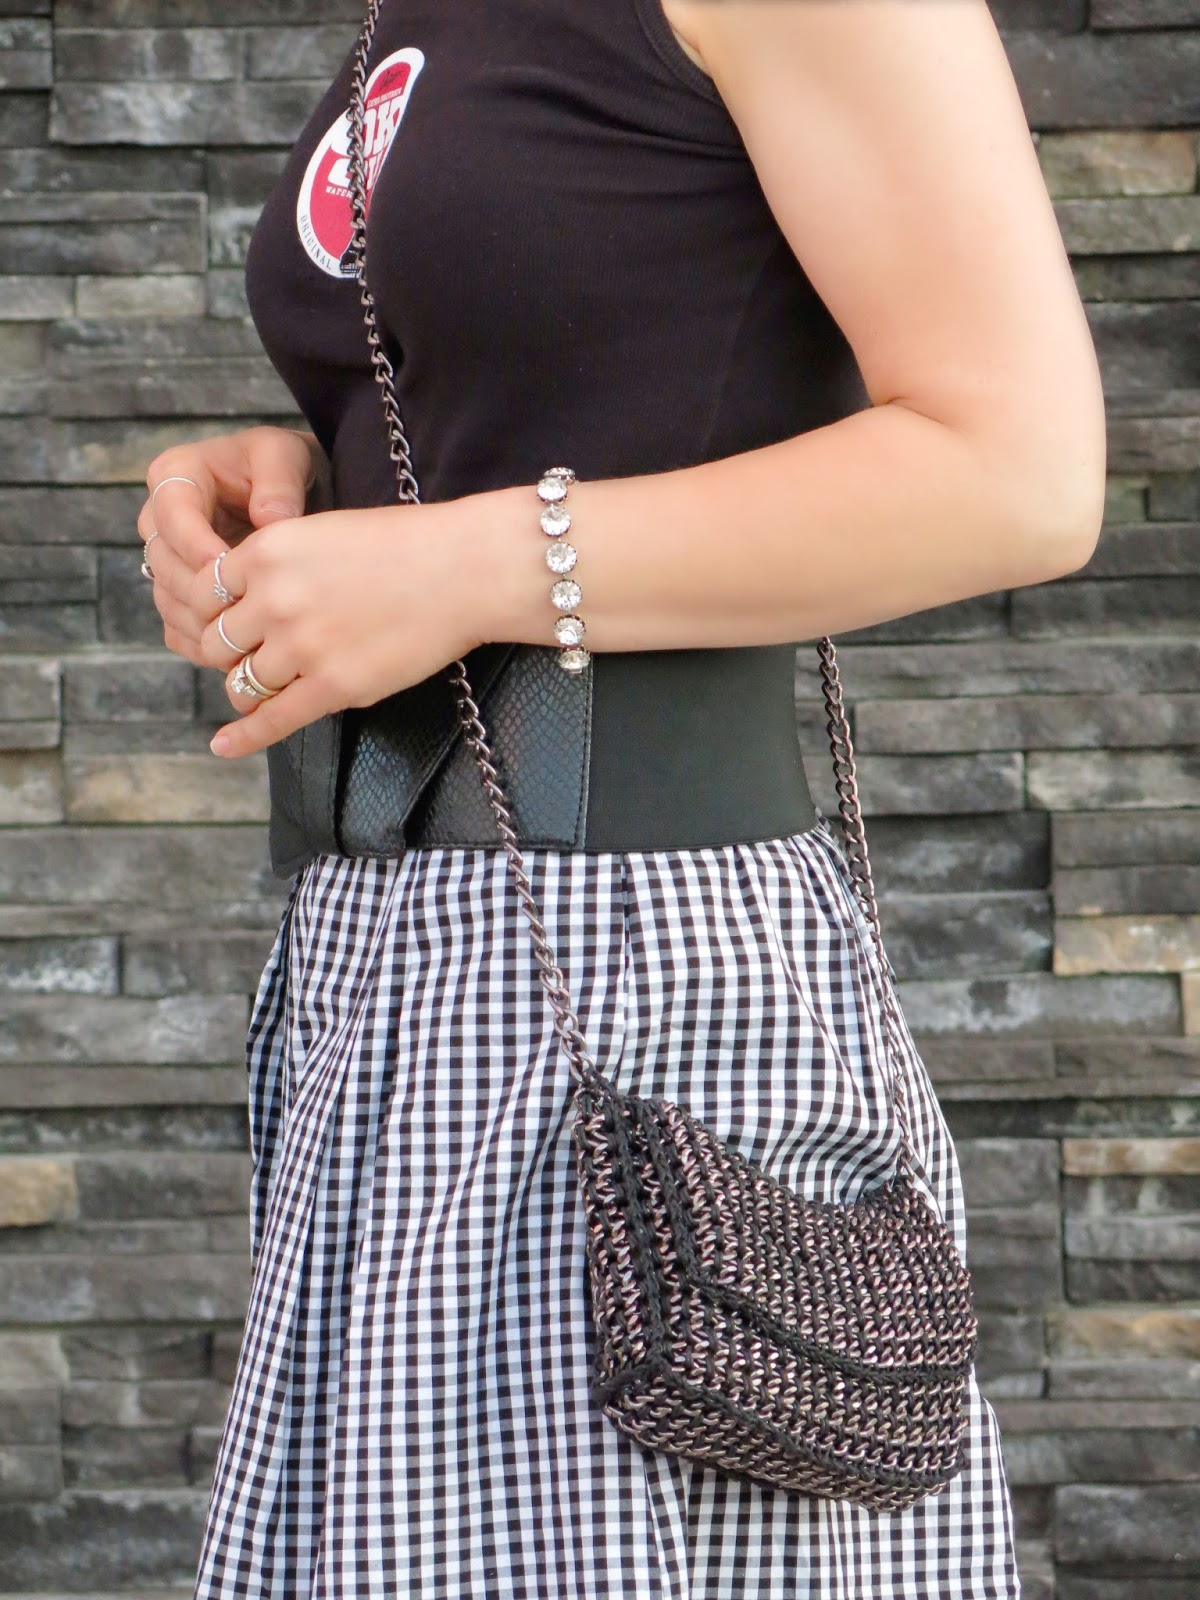 styling a black-and-white gingham skirt with a Dayton tank, extra-wide belt, and accessories